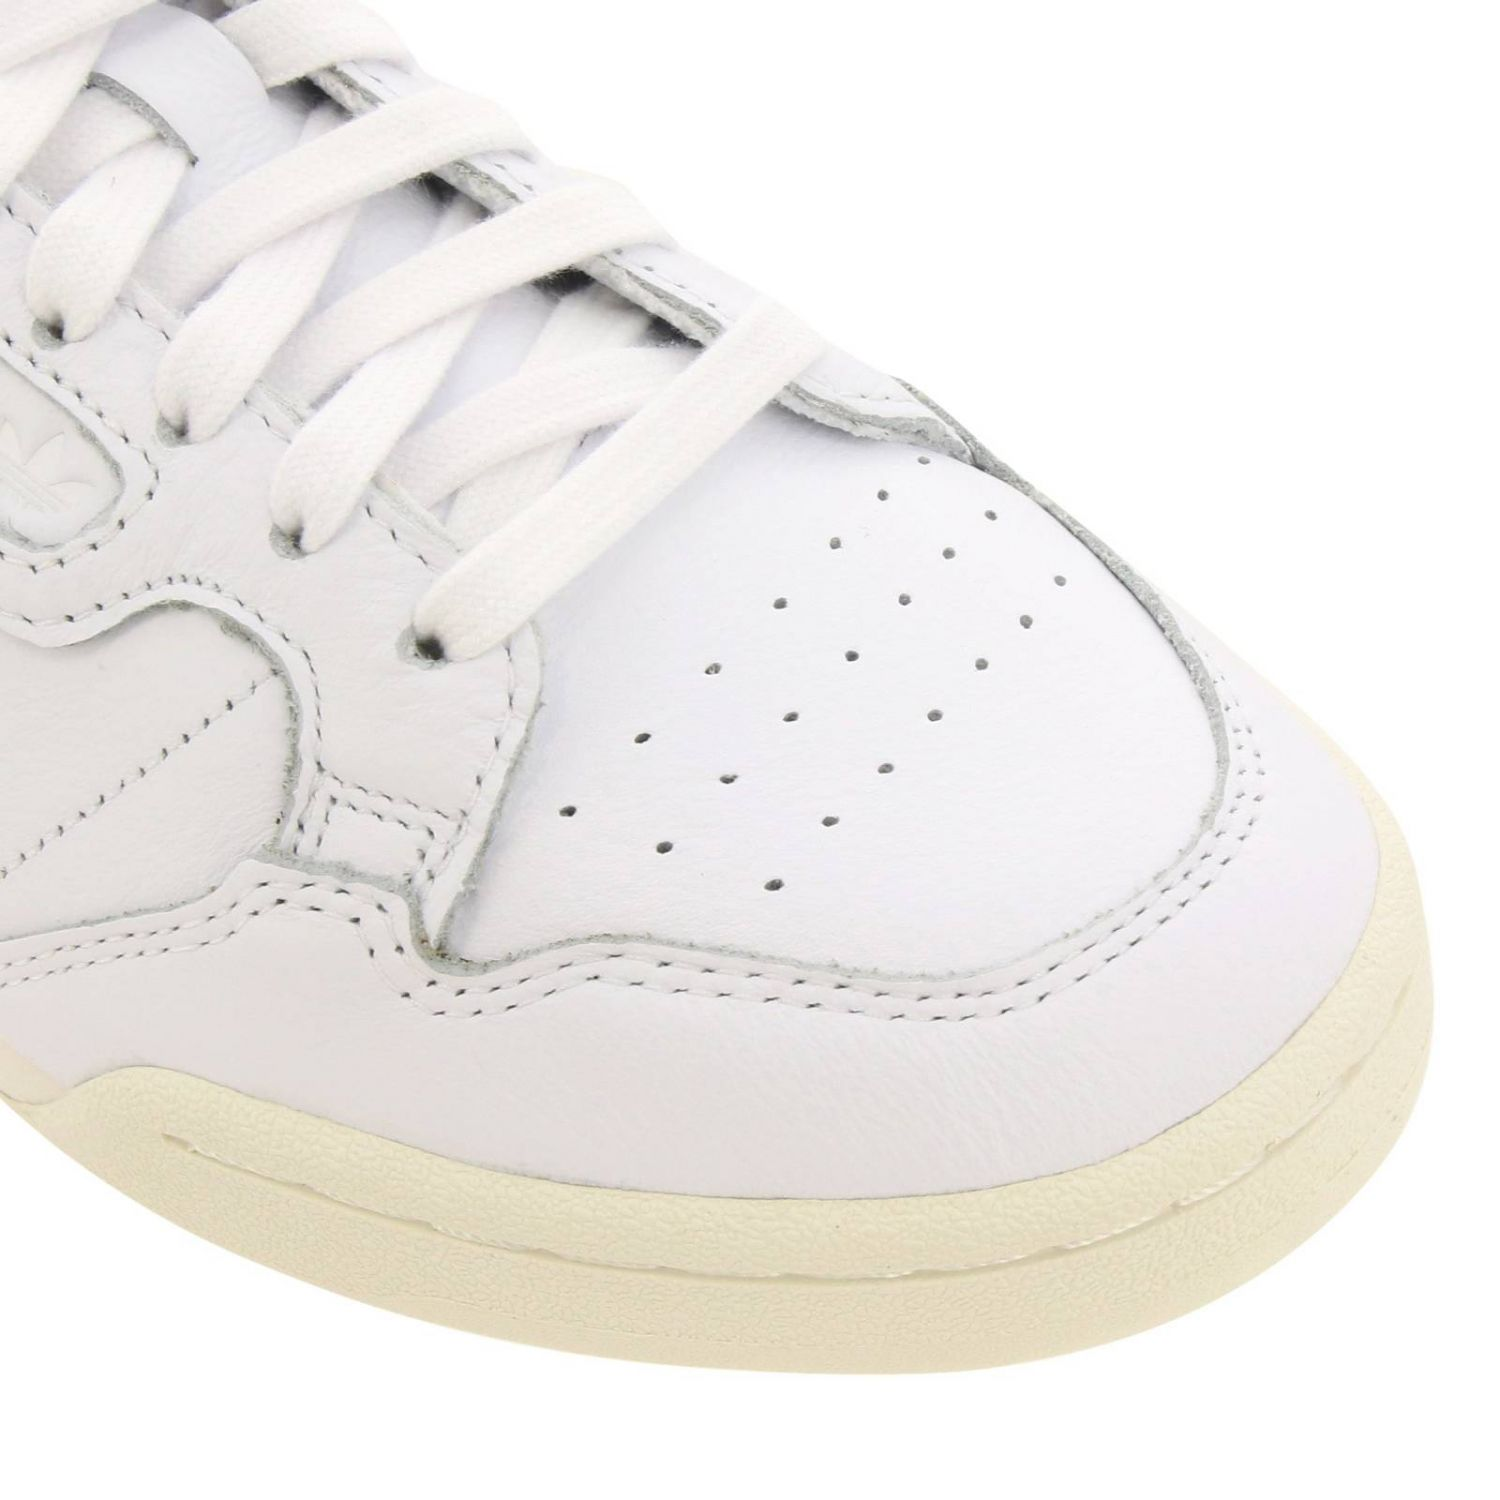 Sneakers Adidas Originals: Adidas Originals 80 Sneakers in smooth leather with holes white 3